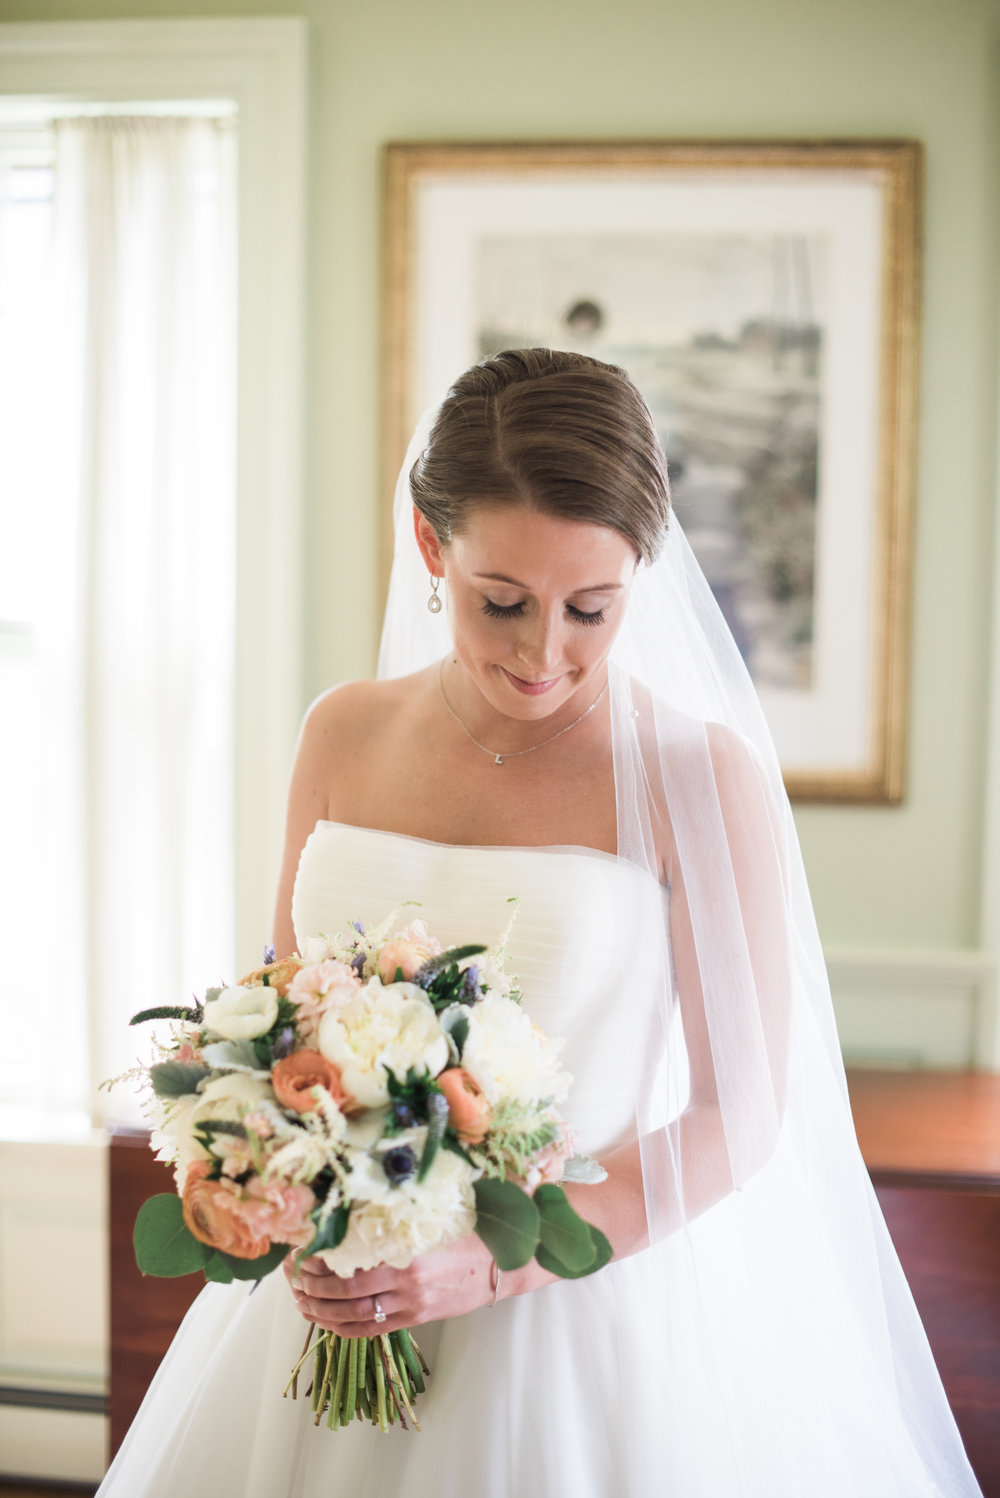 Timeless wedding photography in MA